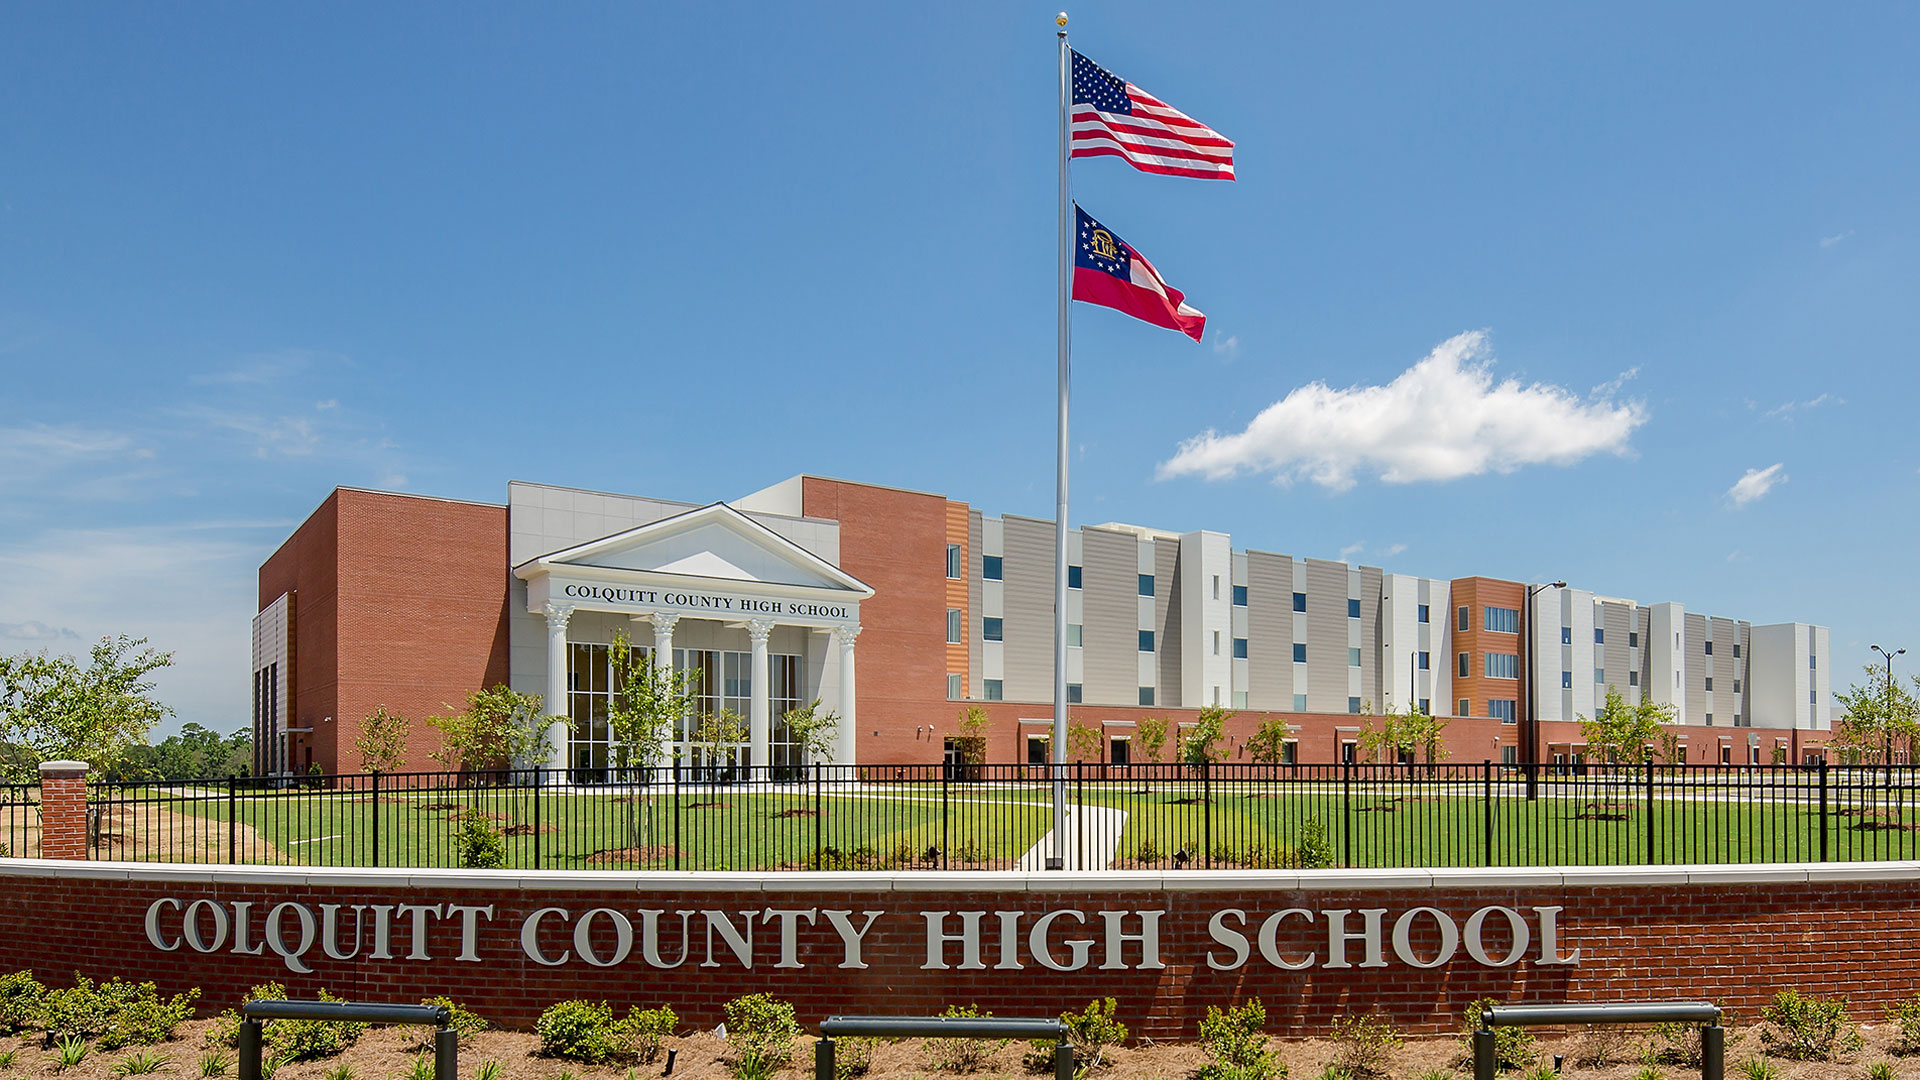 Colquitt County Opens New $45 Million High School